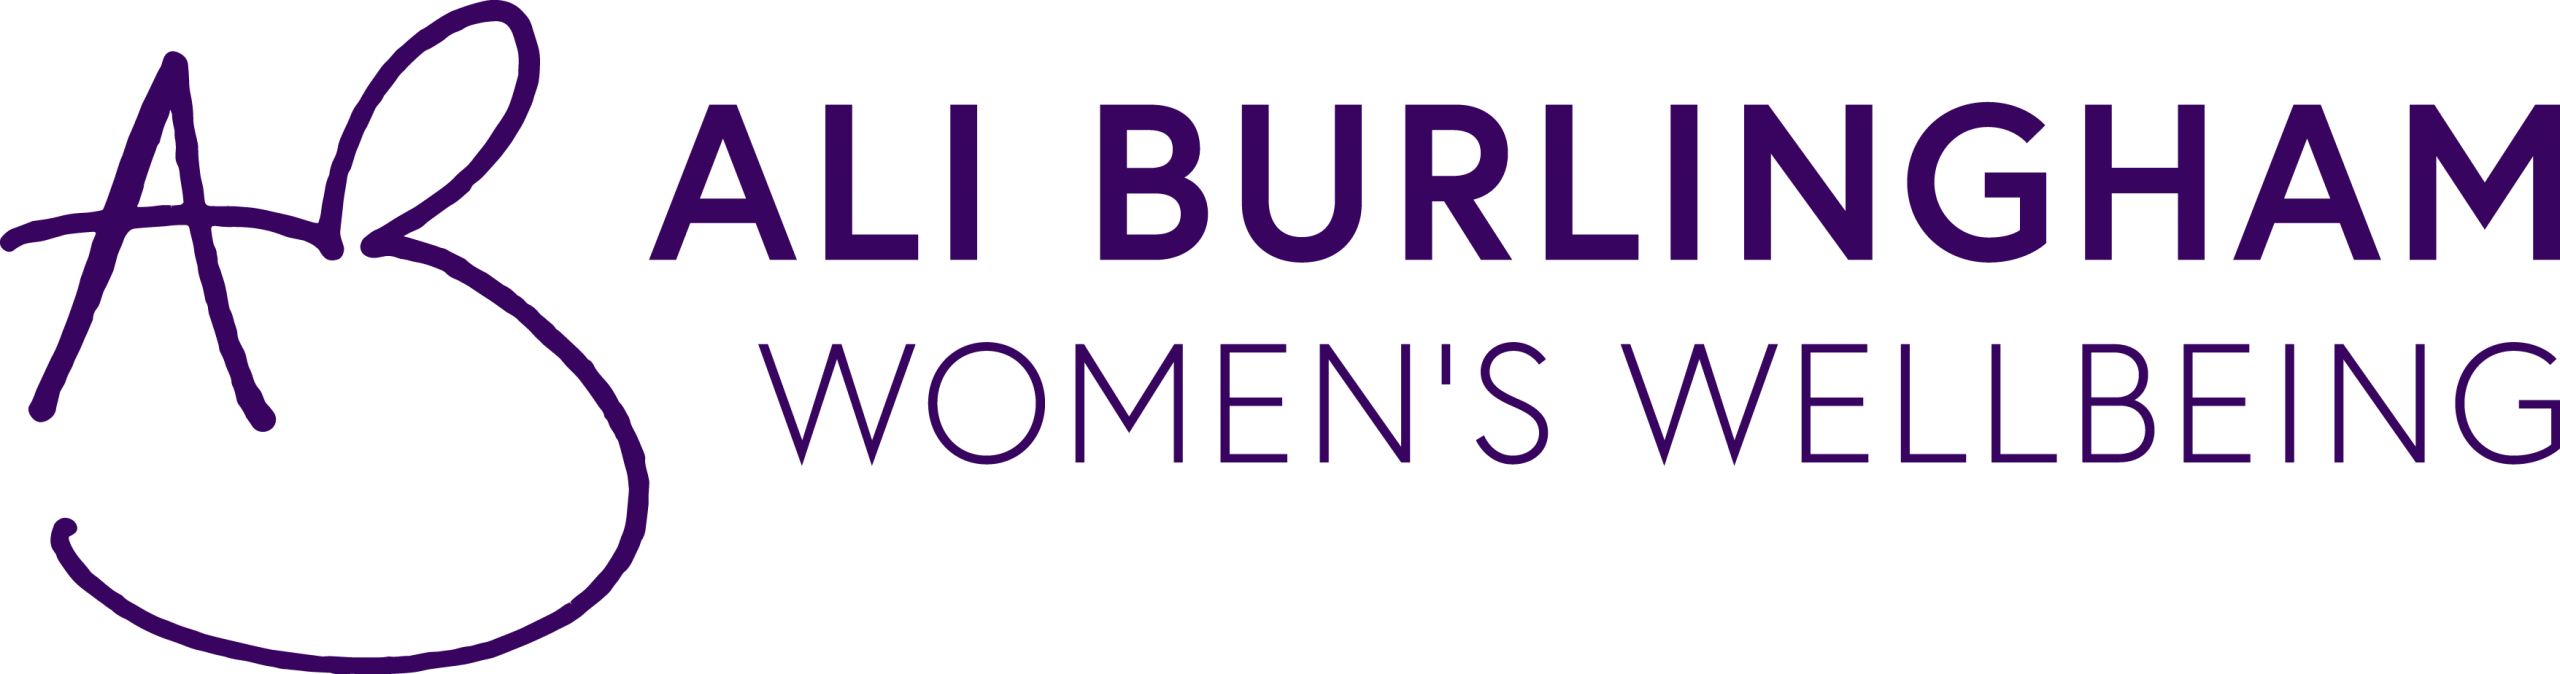 Ali Burlingham: Women's Wellbeing